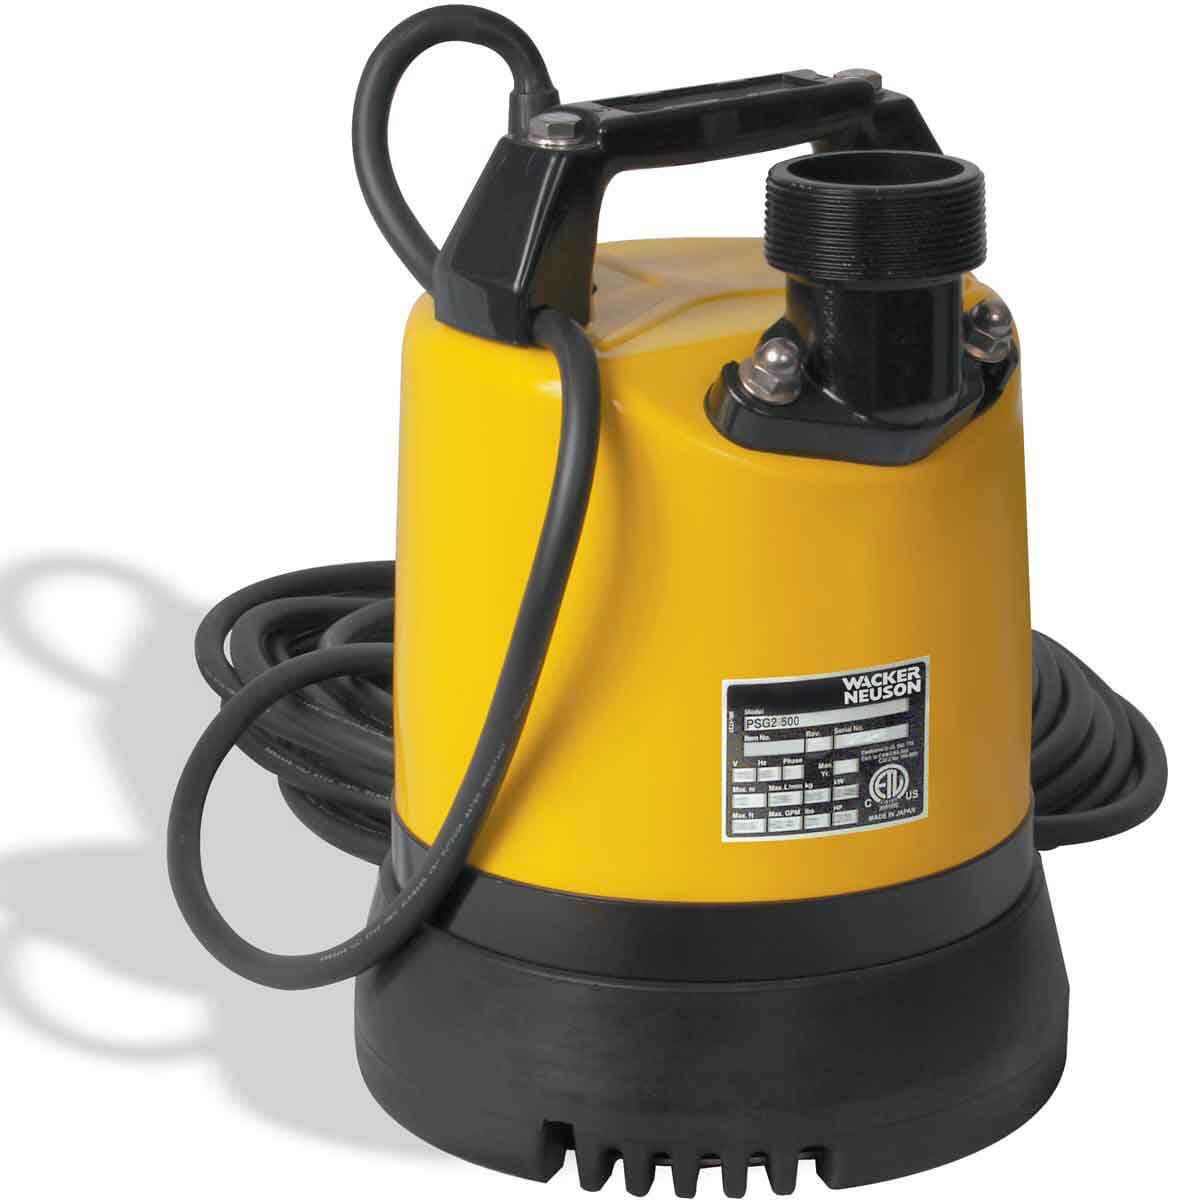 PSG2-500 2 inch Submersible Pump 110V Wacker Neuson